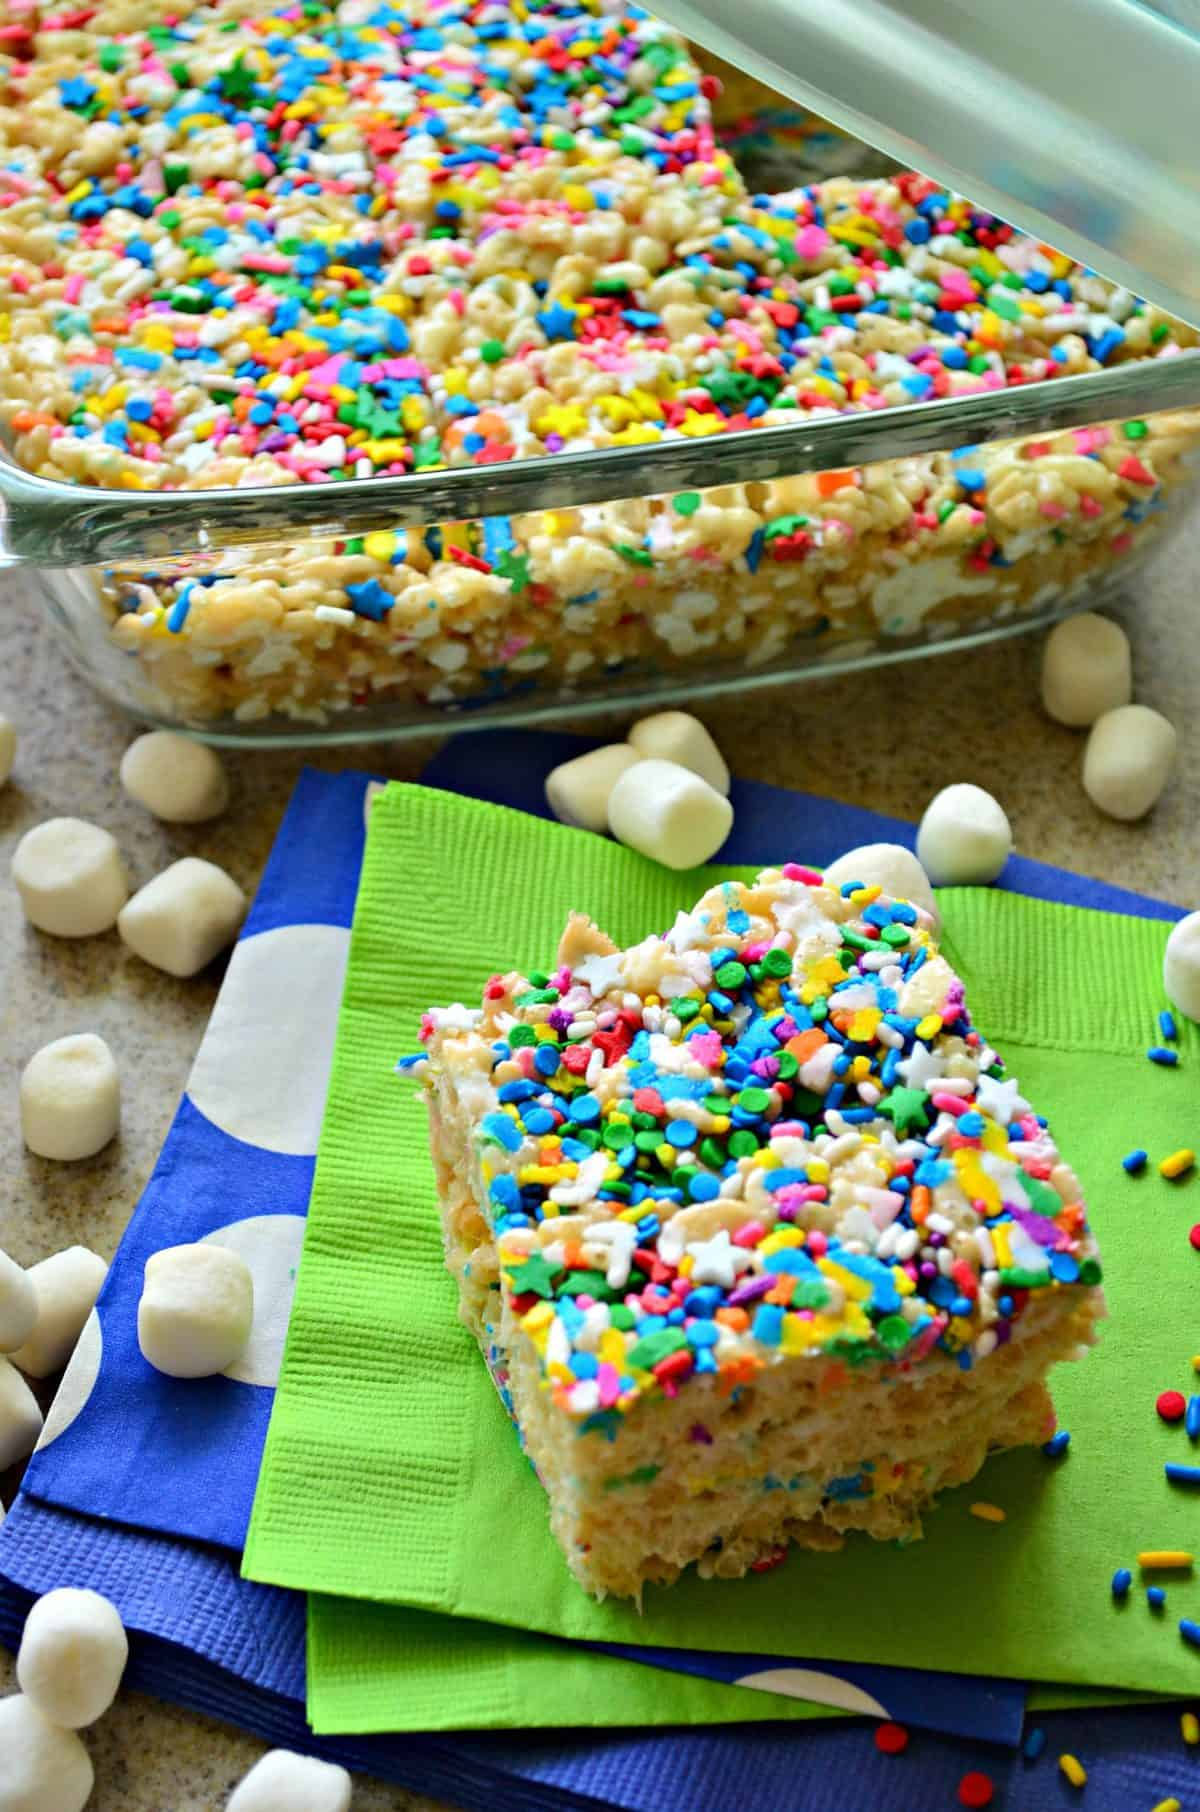 colorful rice crispy square on green napkin in front of glass casserole dish of remaining uncut rice crispy treat.